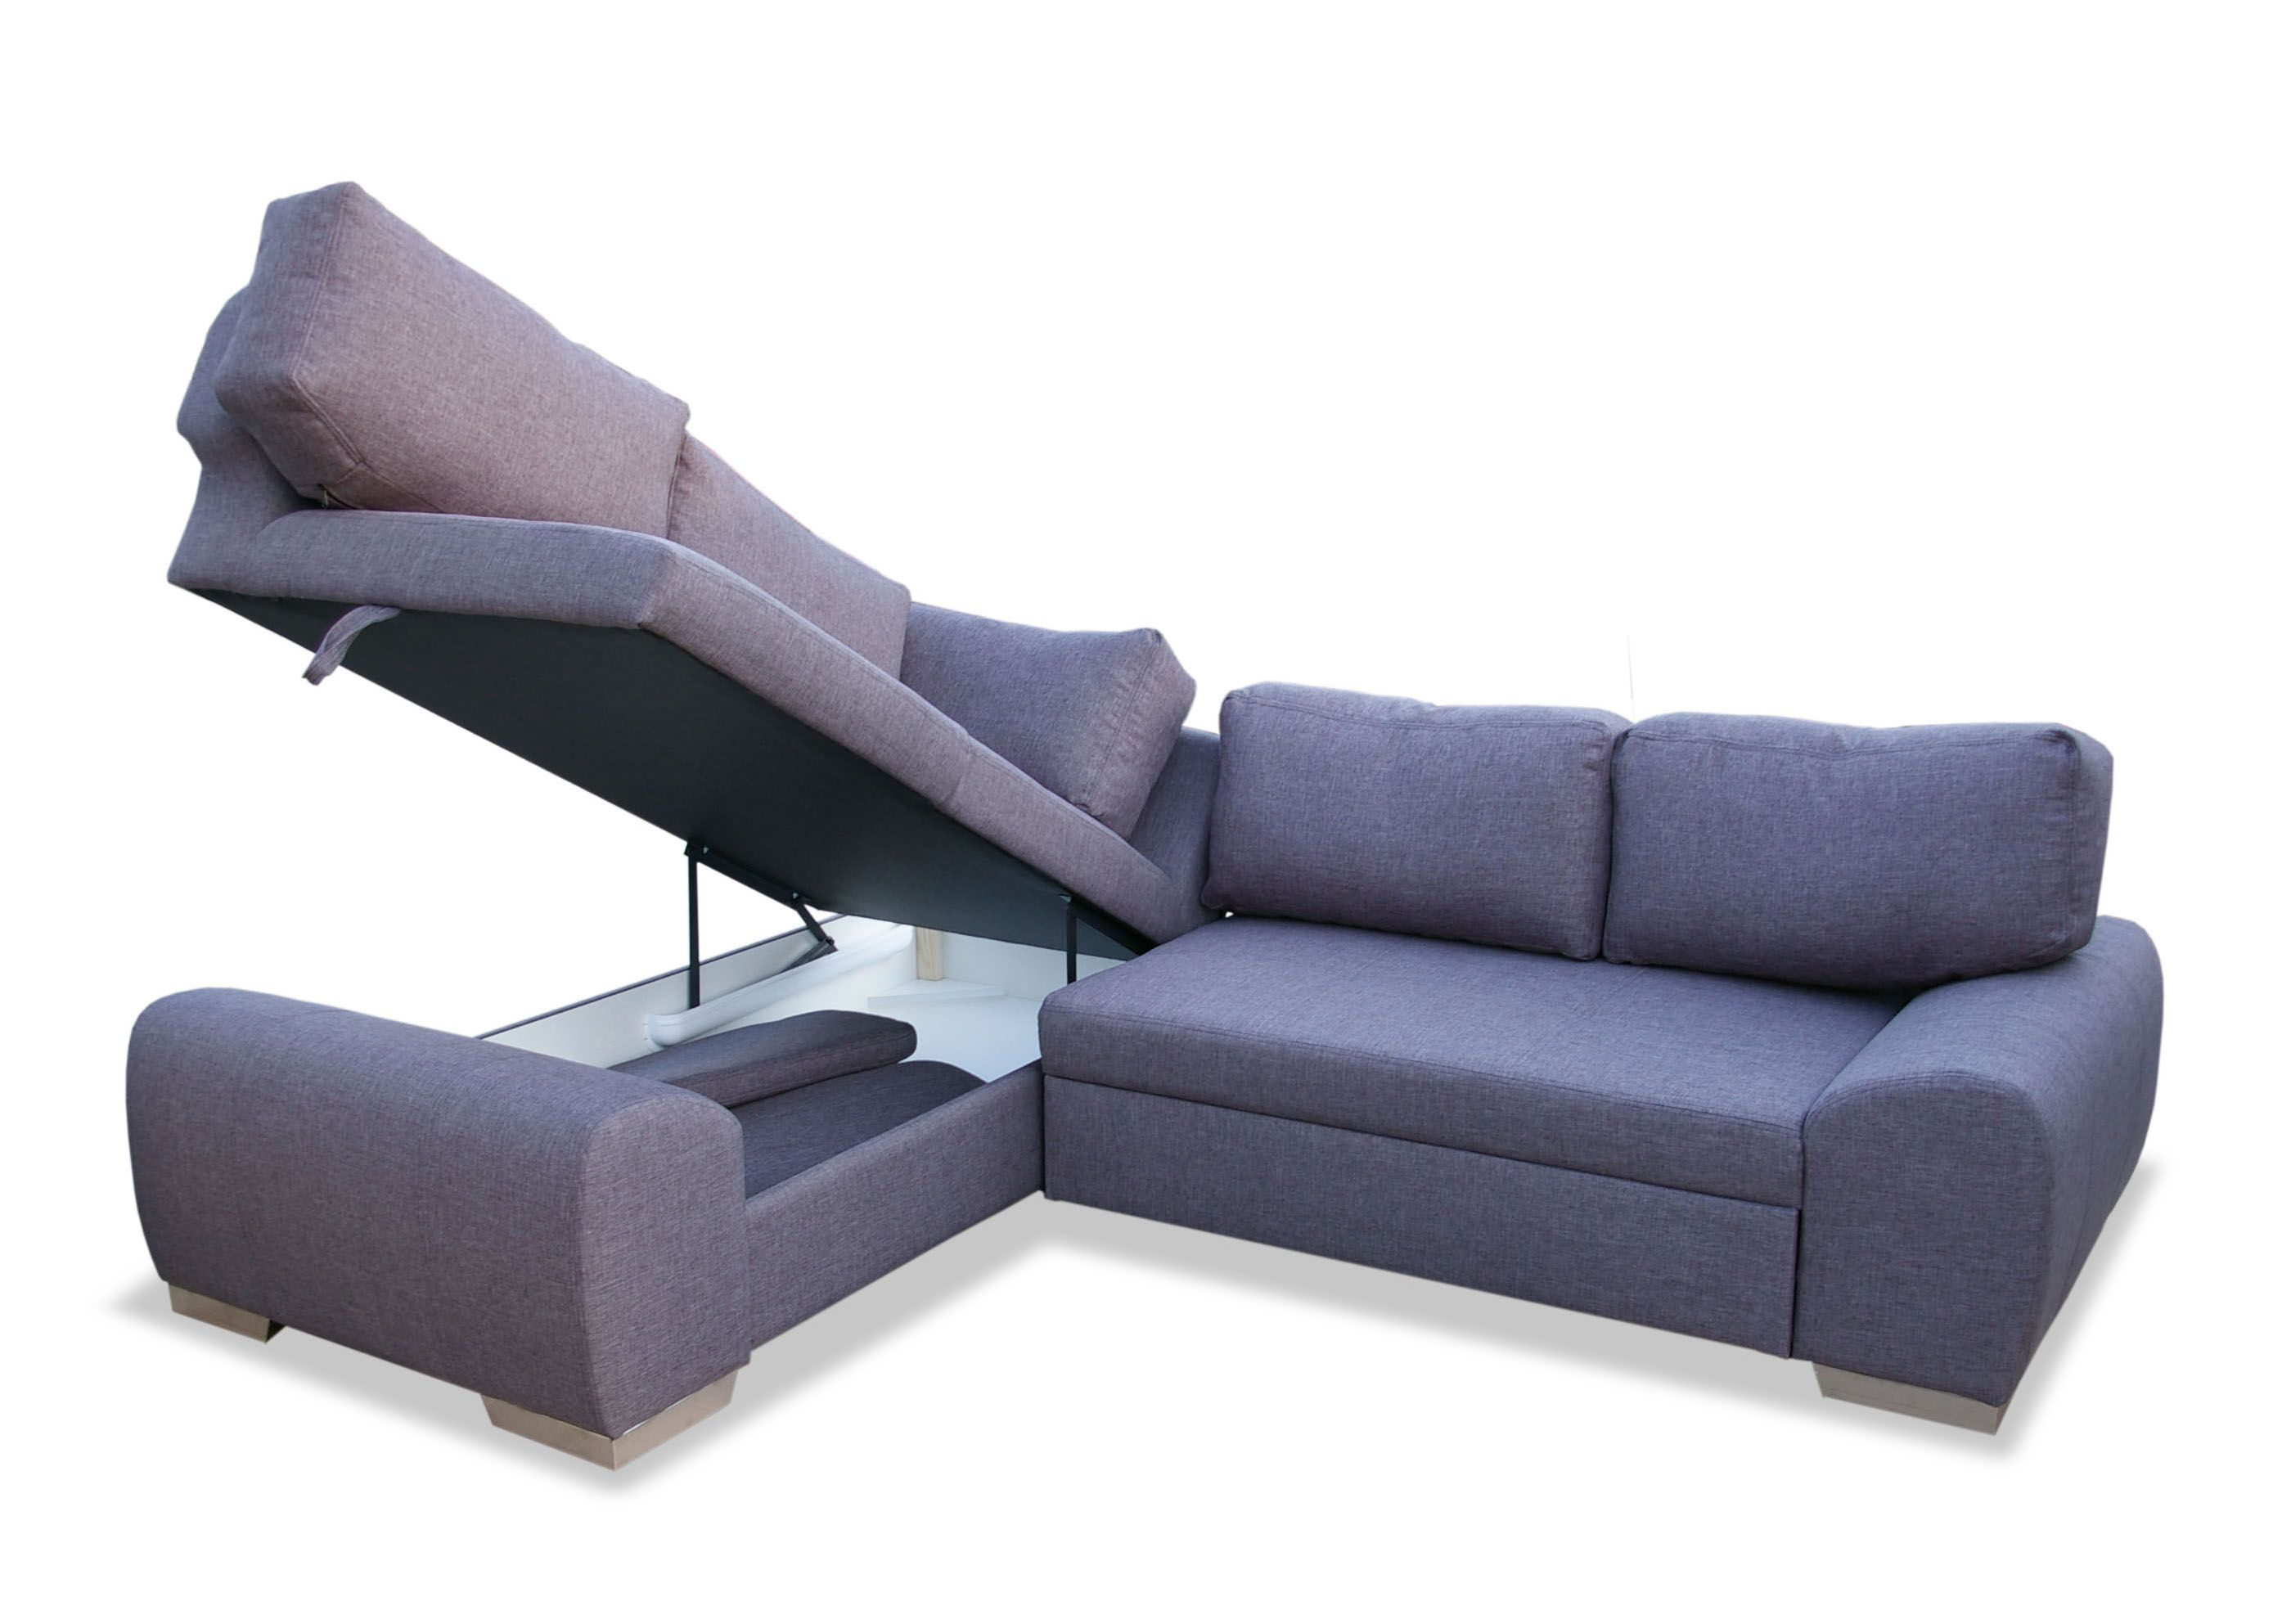 Corner Sofa Beds With Storage A Complete Package For Living Space Decoration Corner Sofa Bed With Storage Amazing Sofa Bed Sofa Storage